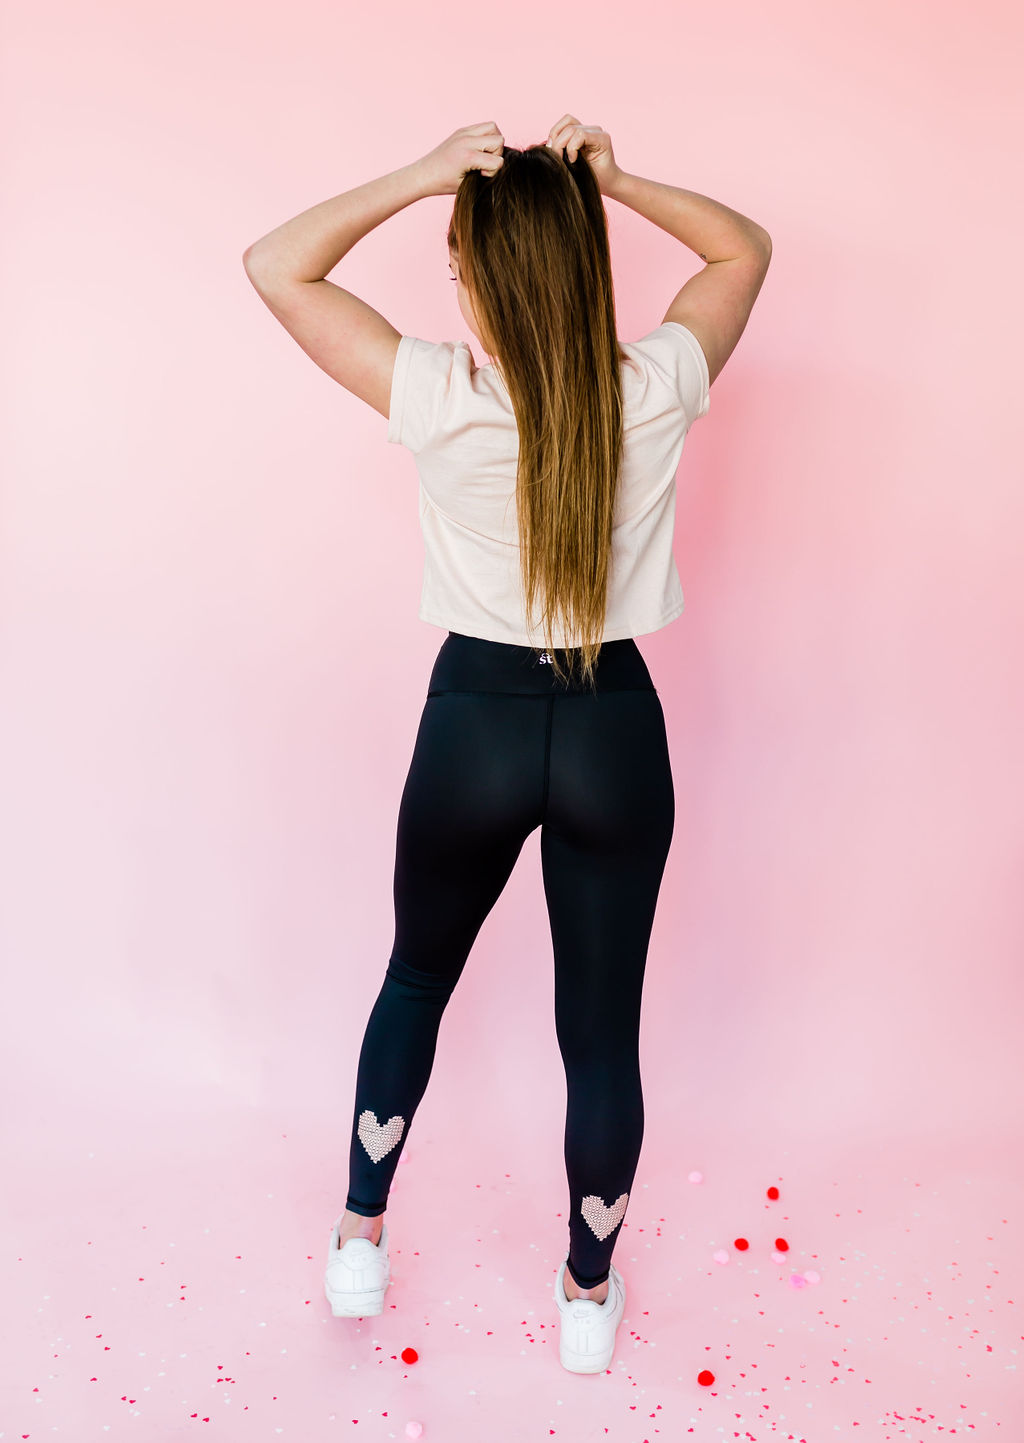 For Your Morning Workout - Leggings: Strut This $86